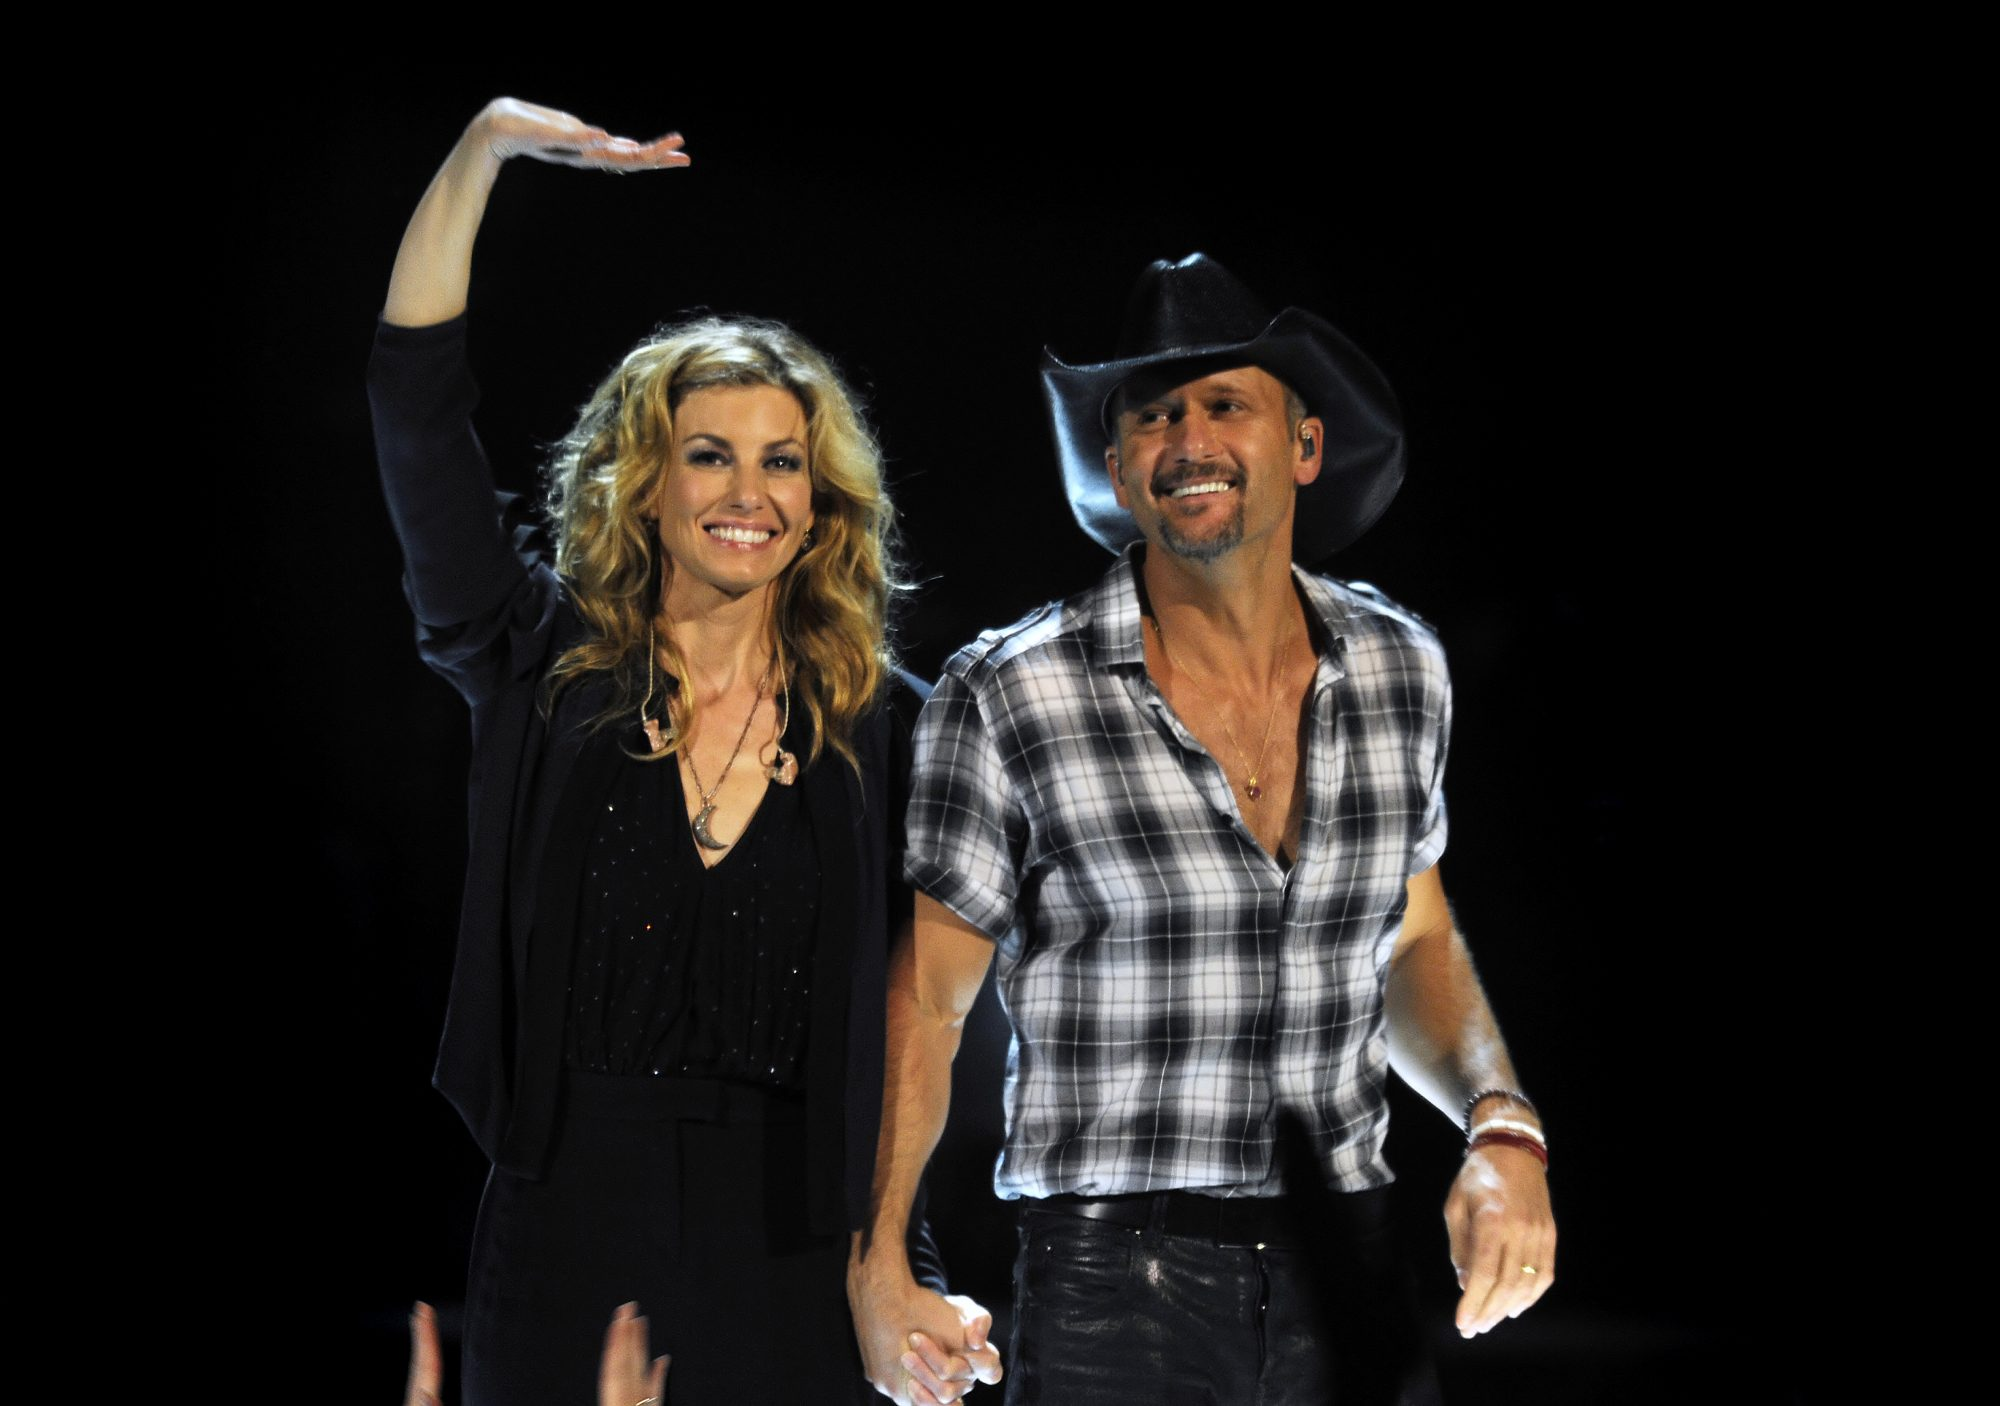 Faith Hill and Tim McGraw perform on stage at the Rod Laver Arena on March 20 2012, in Melbourne, Australia.